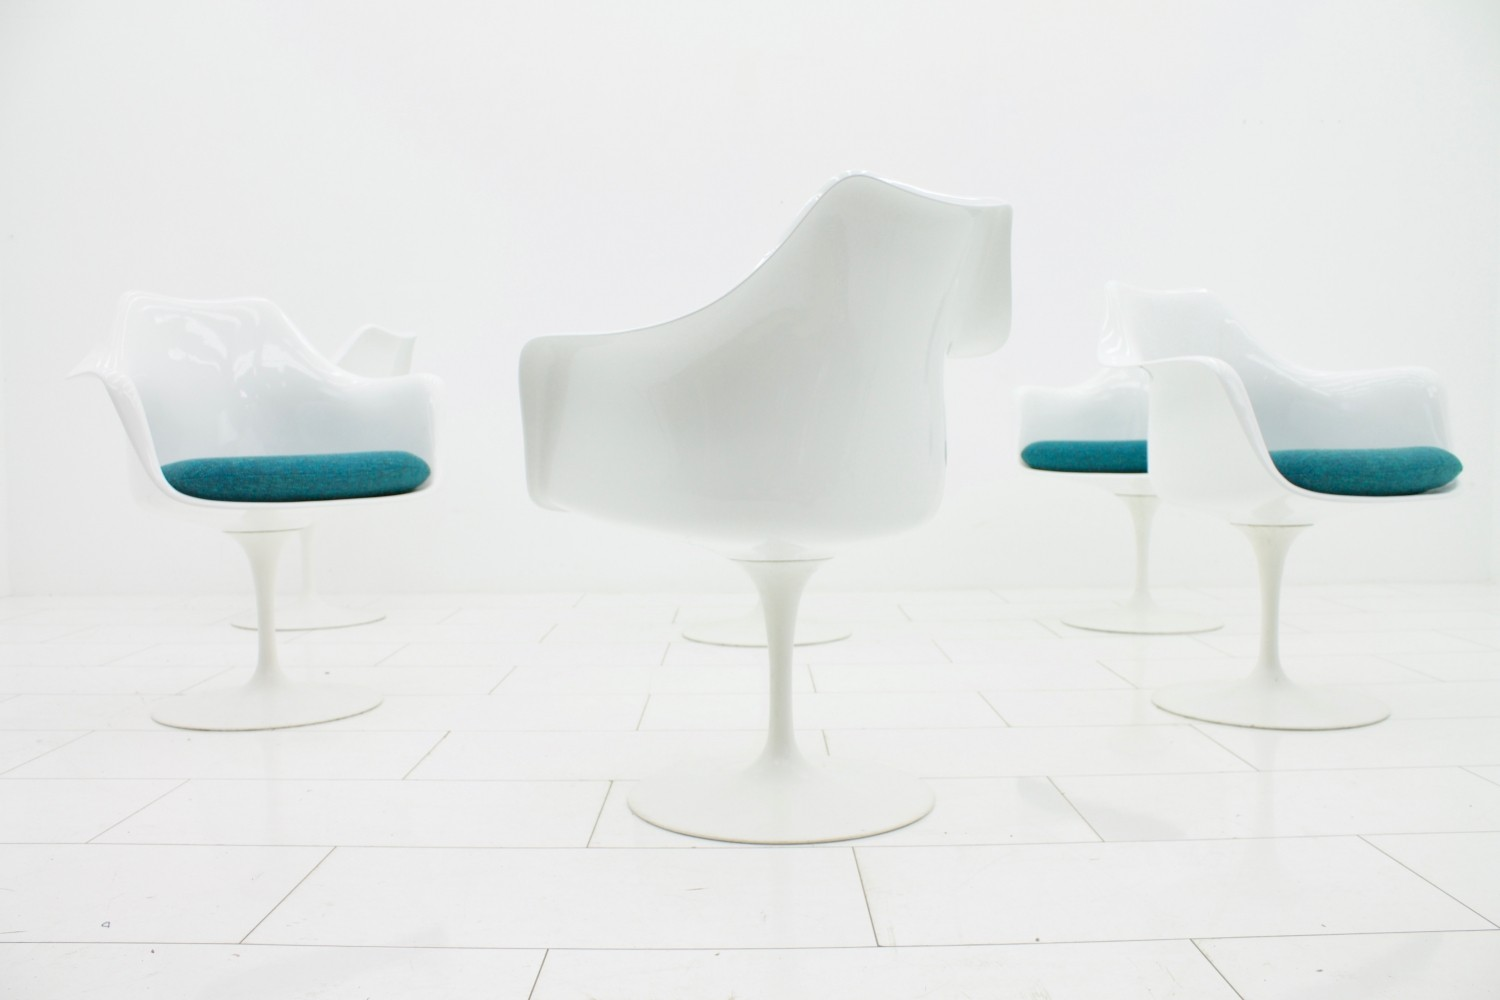 Set of 6 Model 150 arm chairs by Eero Saarinen for Knoll International, 1940s